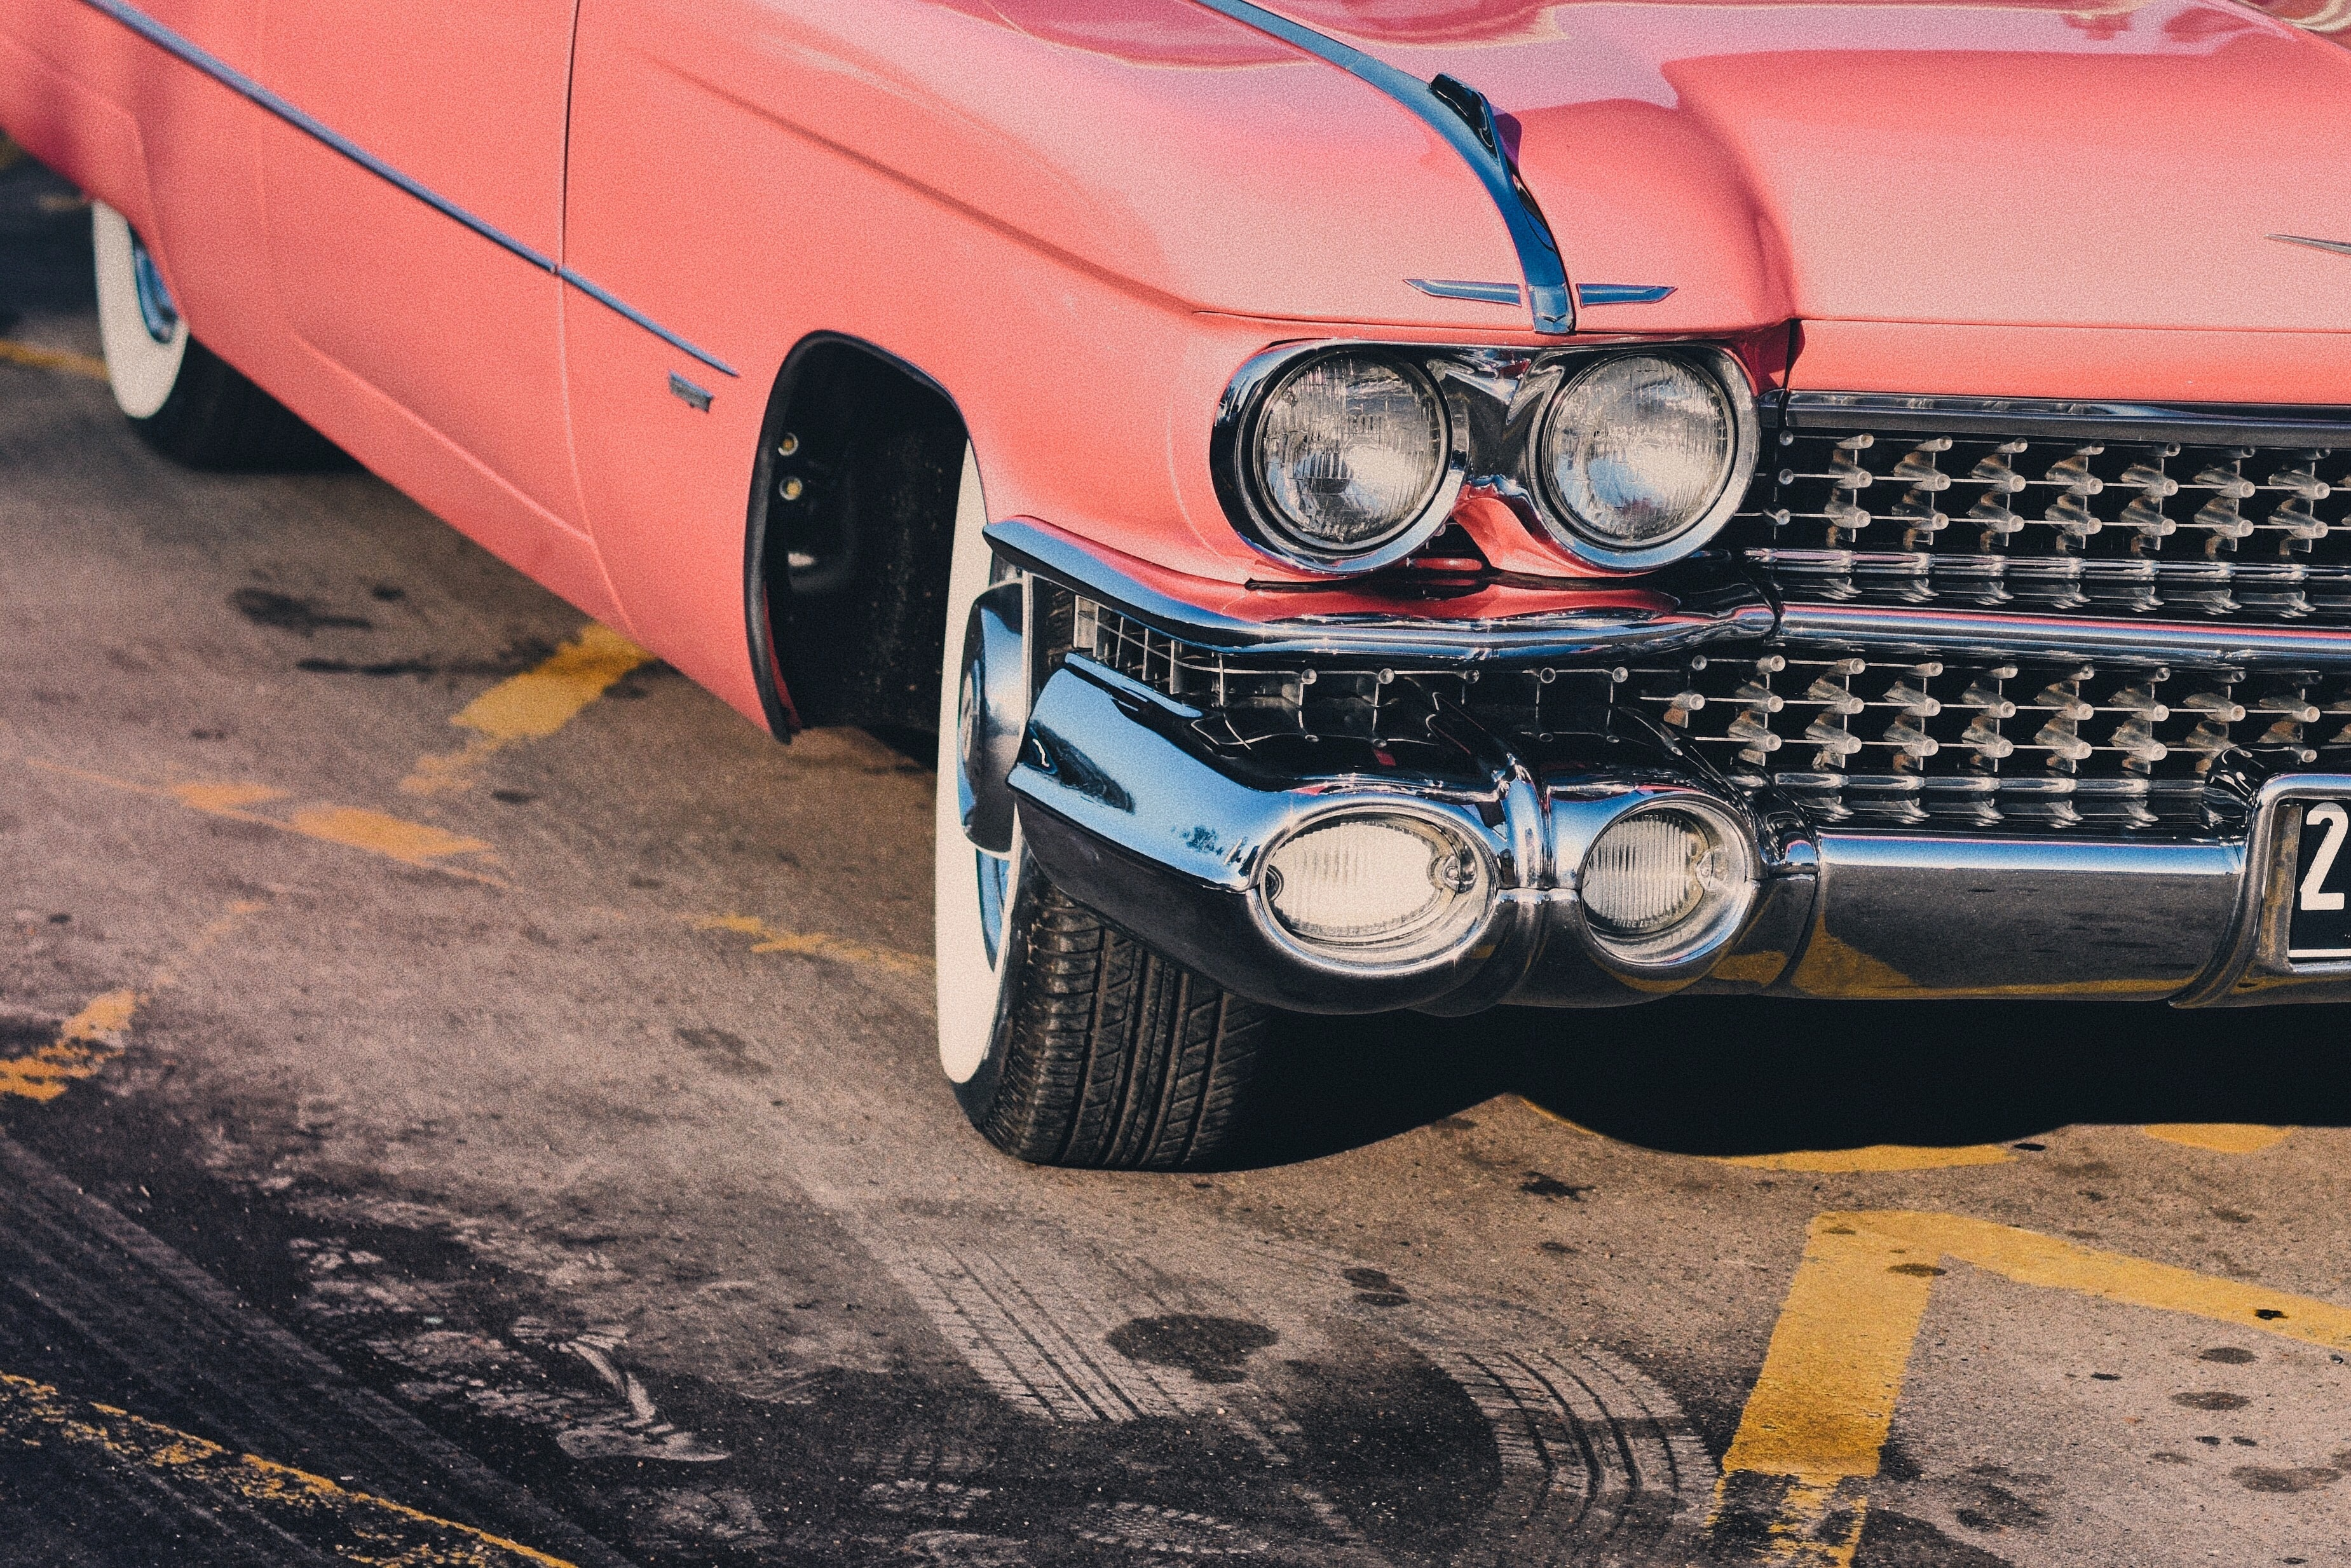 A shot of the front right view of a classic pink Chevrolet behind the skid marks.